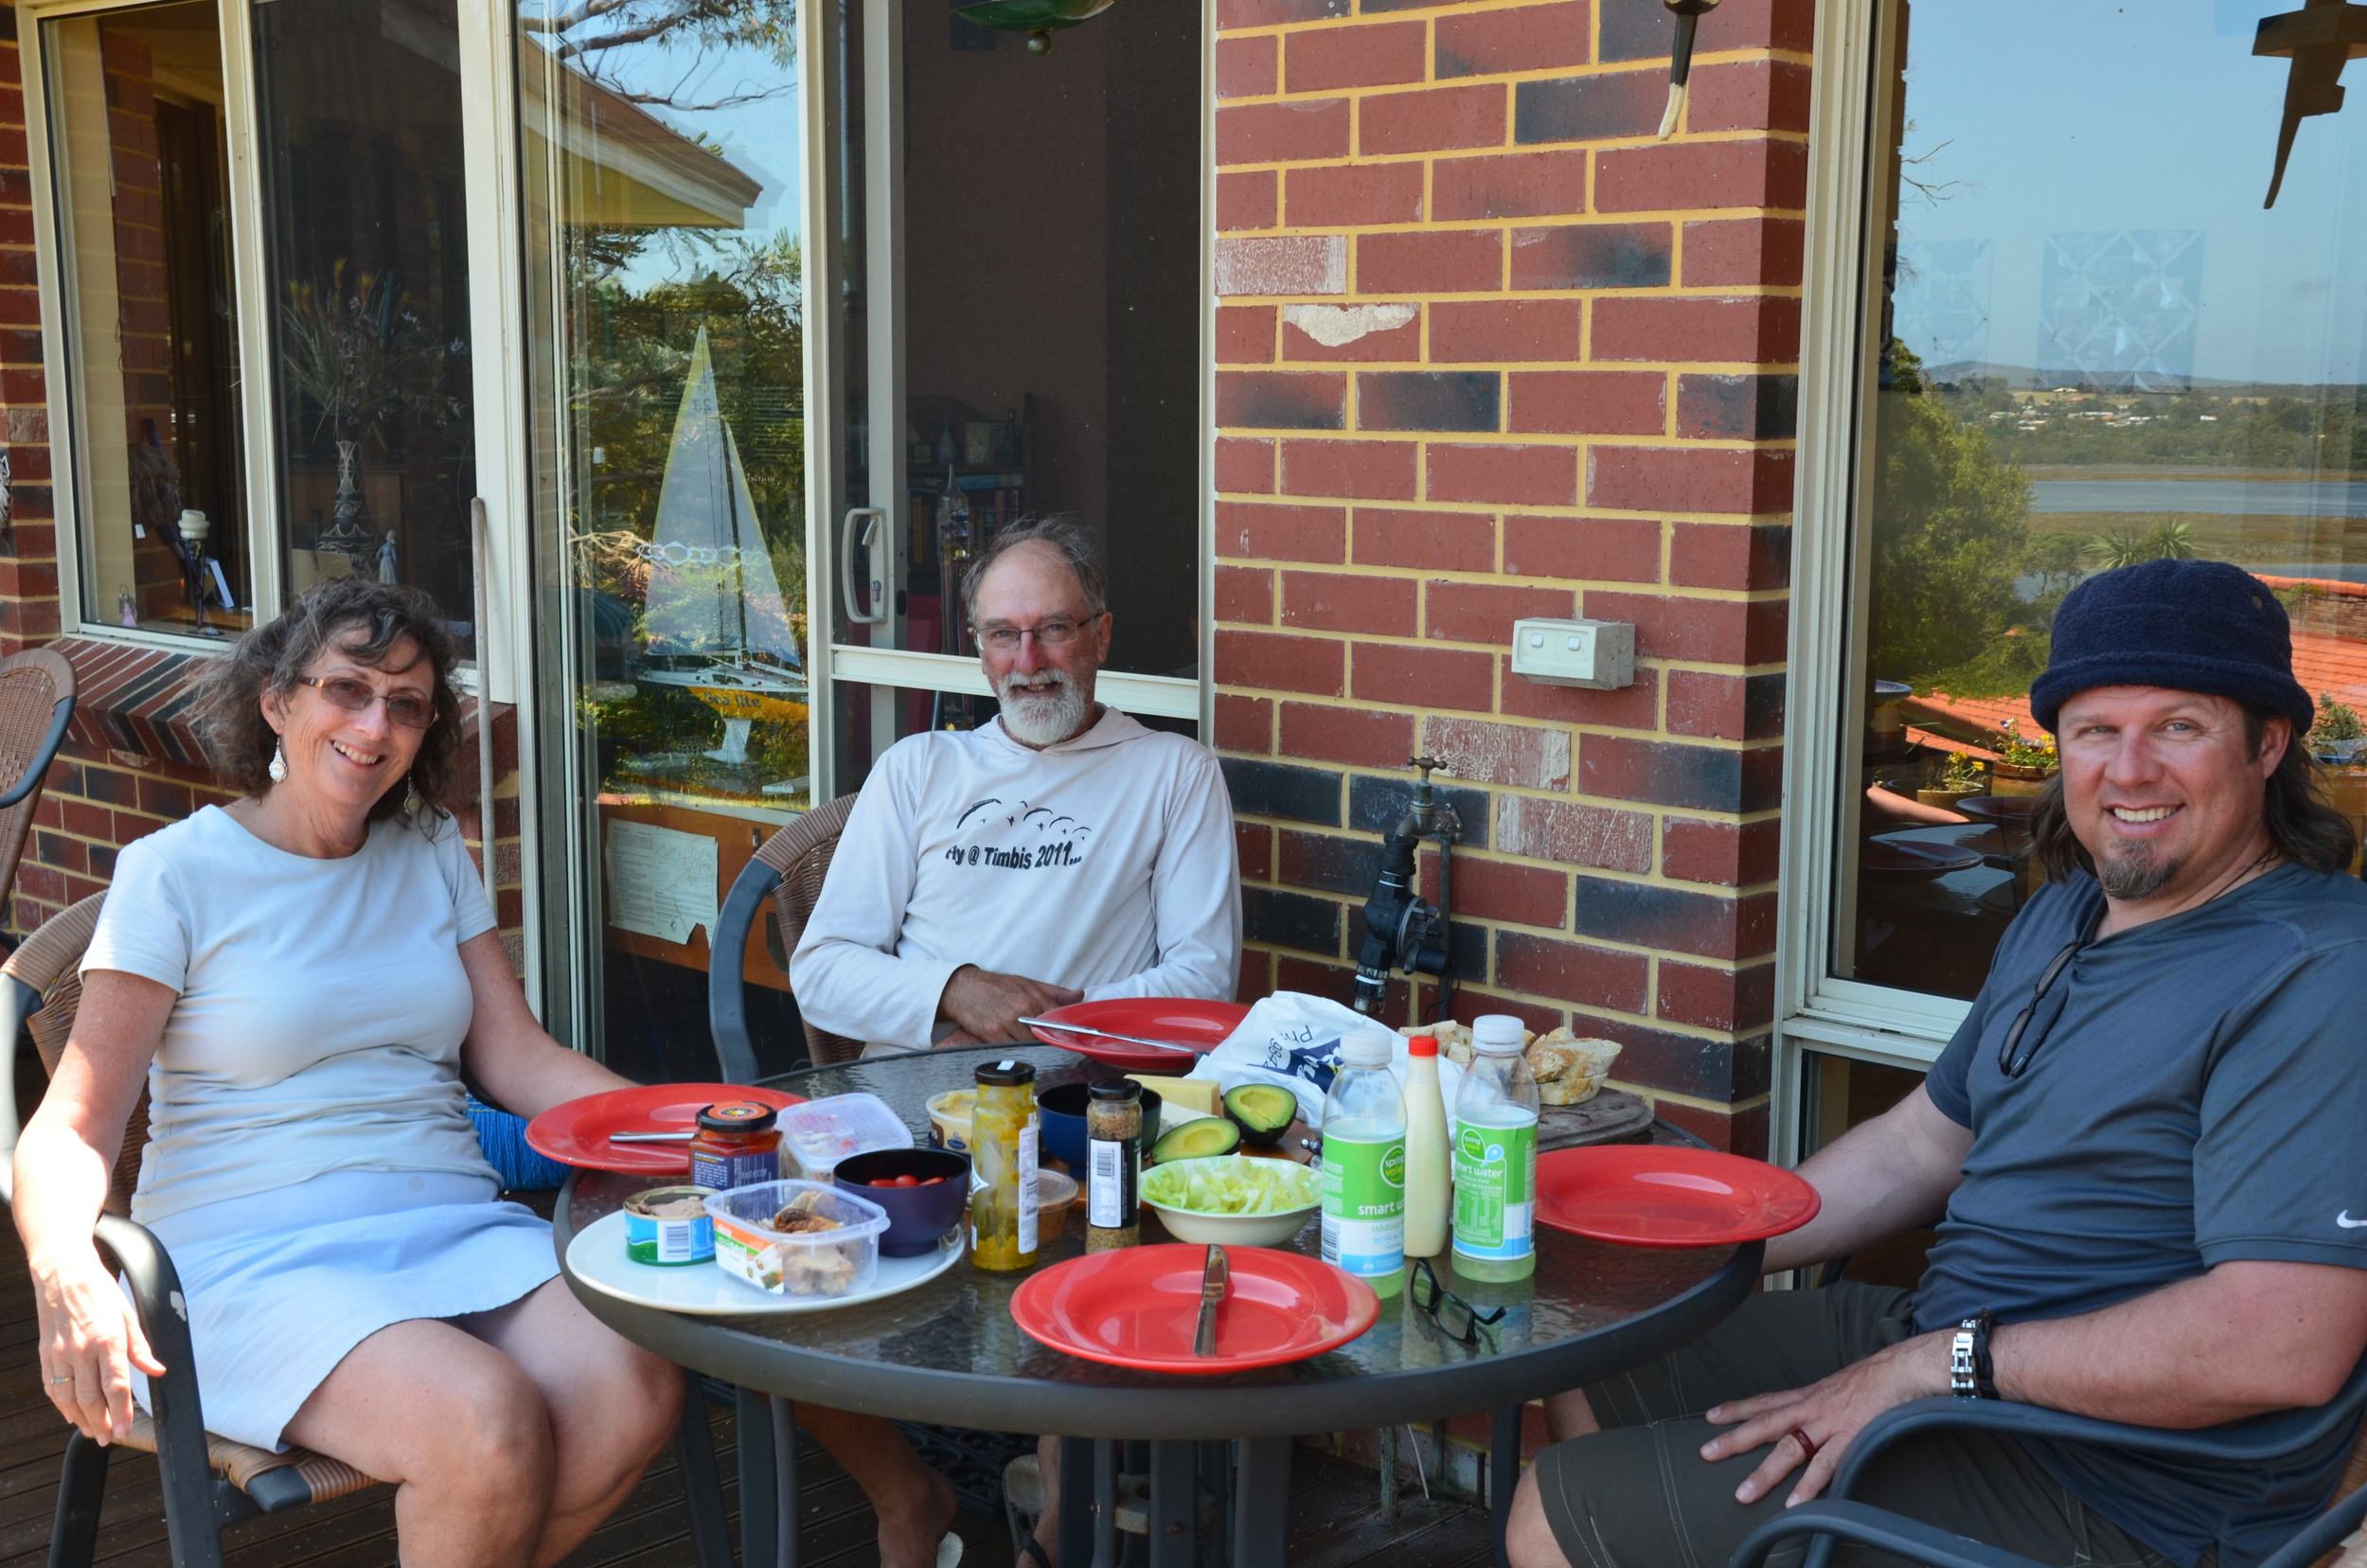 Lunch on the deck with Debbie and Rob